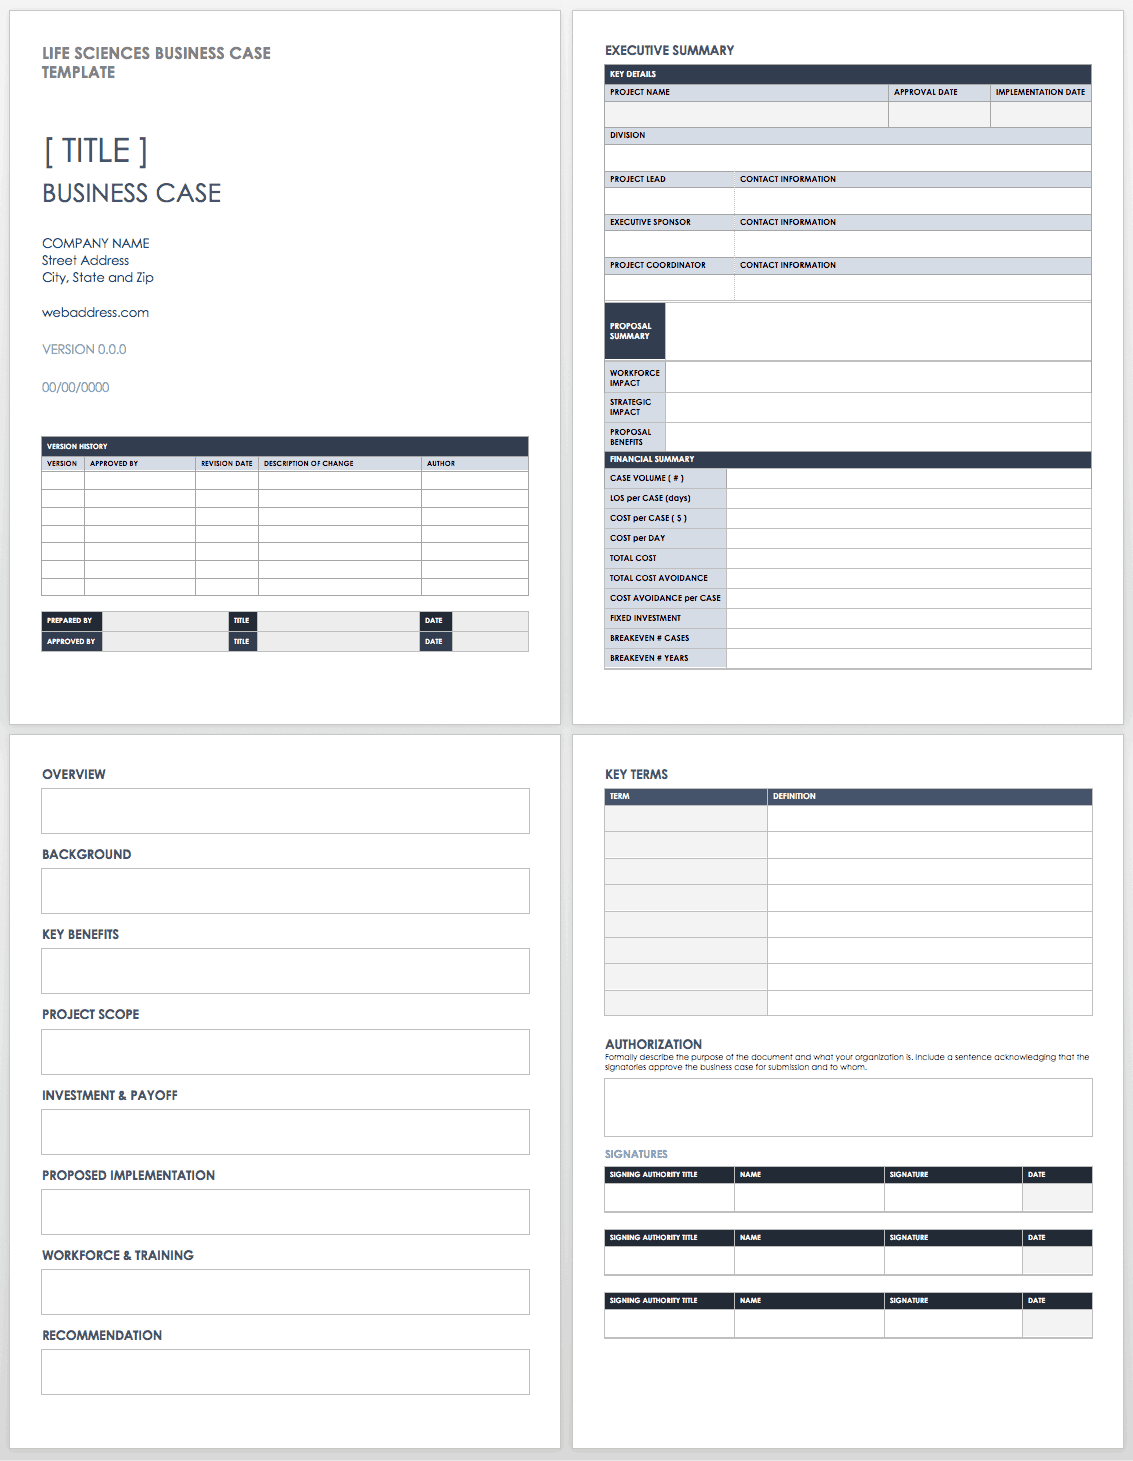 Free business case templates smartsheet life sciences business case friedricerecipe Gallery